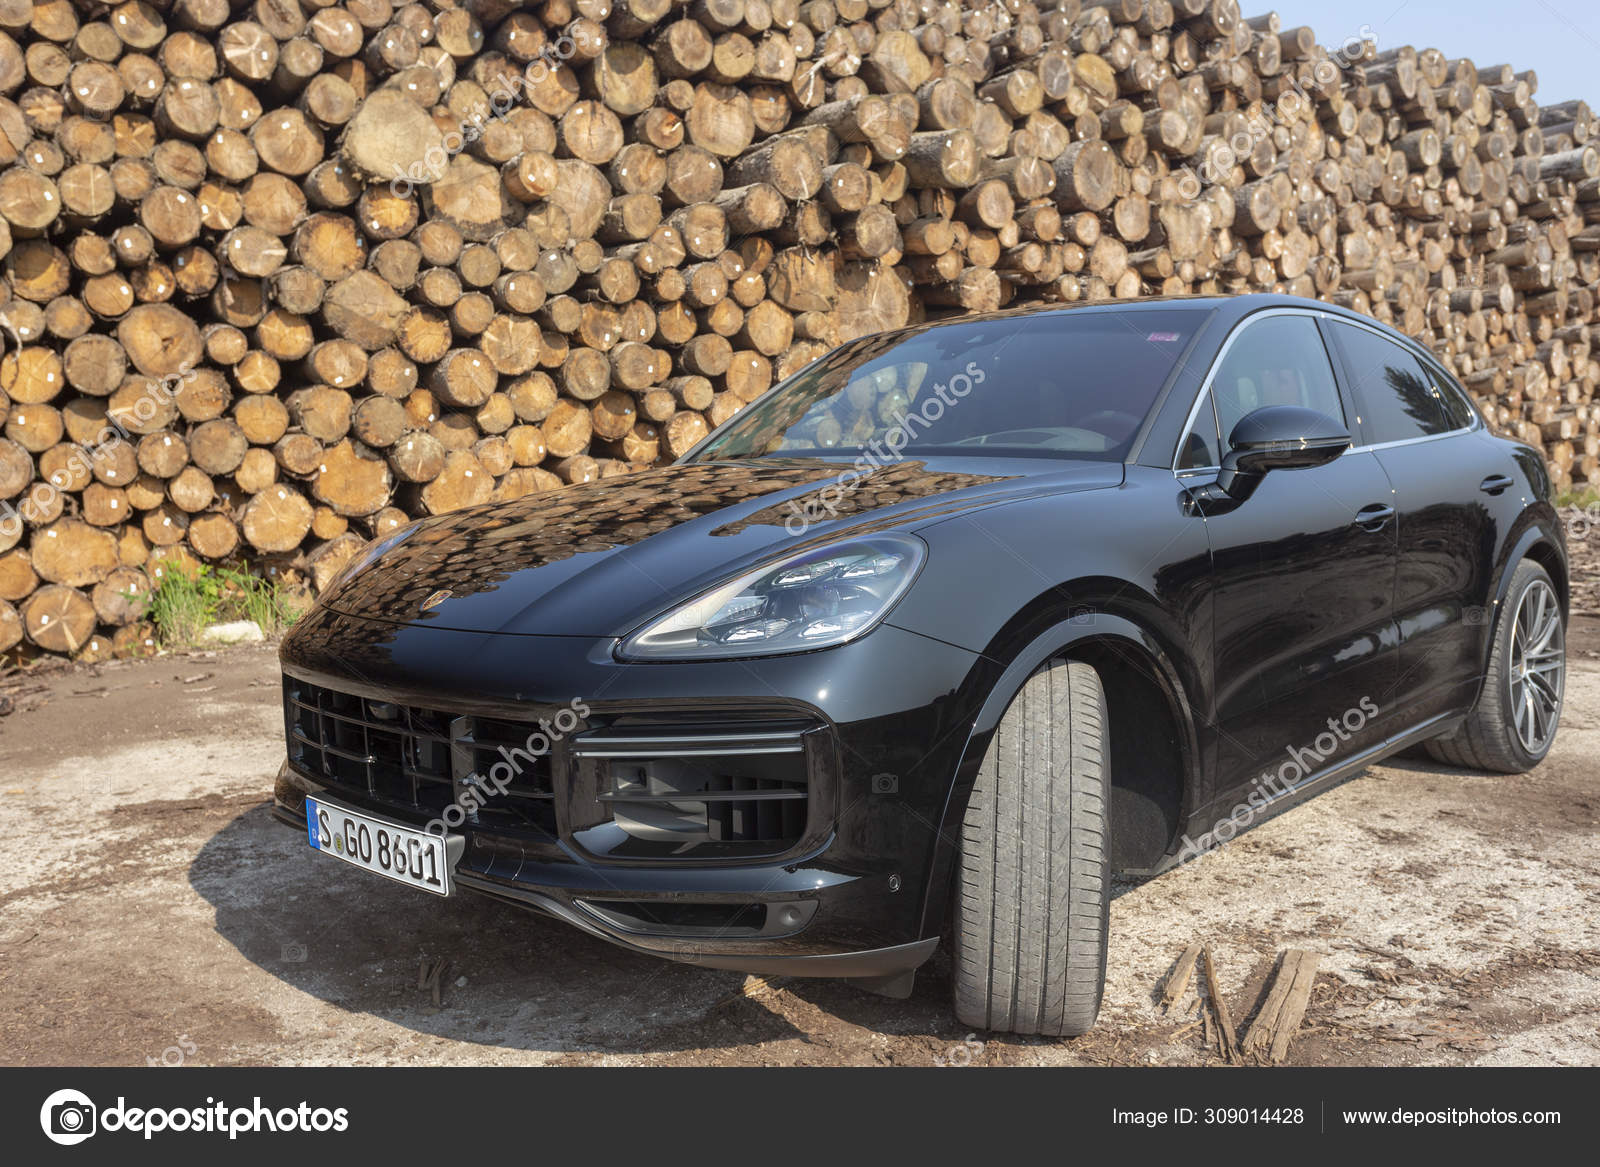 Slovenia Ljubljana 31 August 2019 All New Black Porsche Cayenne Coupe Turbo S From Stuttgart During With Wooden Background Test Drive On Sawmill Stock Editorial Photo C Taborov 309014428